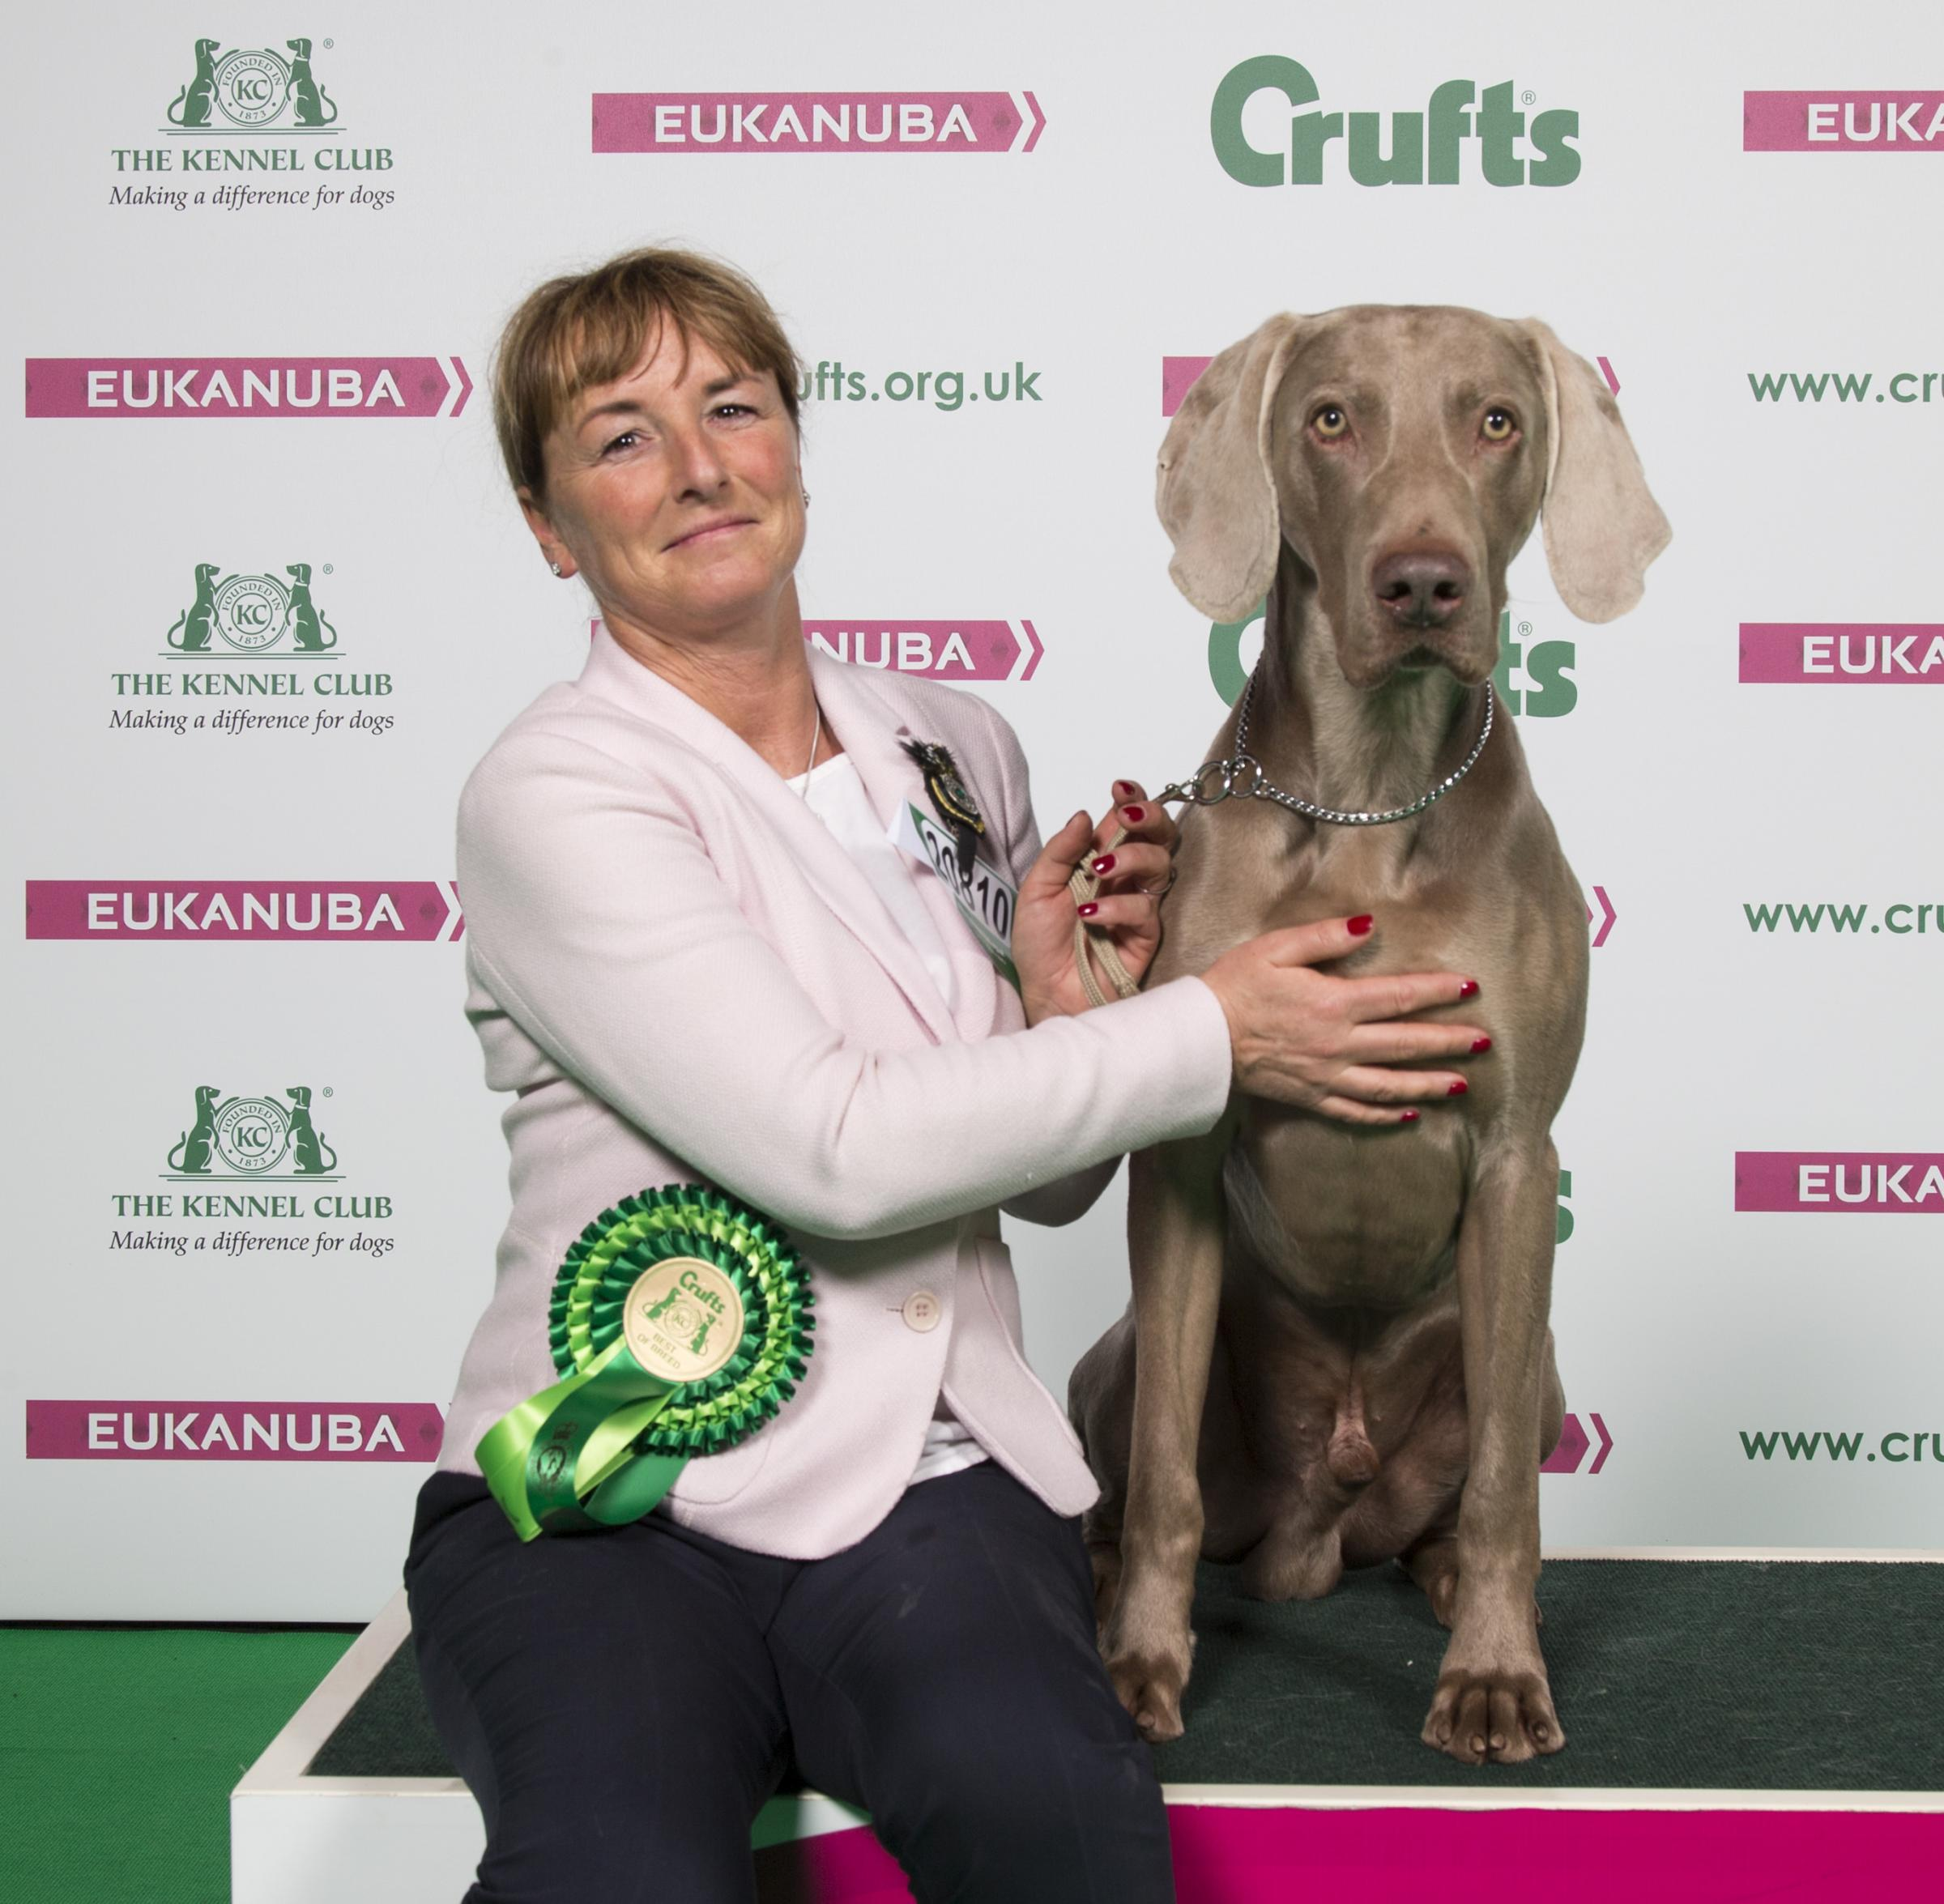 Carol Ruddy from Dolphinton with Kane a Weimaraner, won Best of Breed on the fourth and final day of Crufts 2018. Photo: Flick.digital